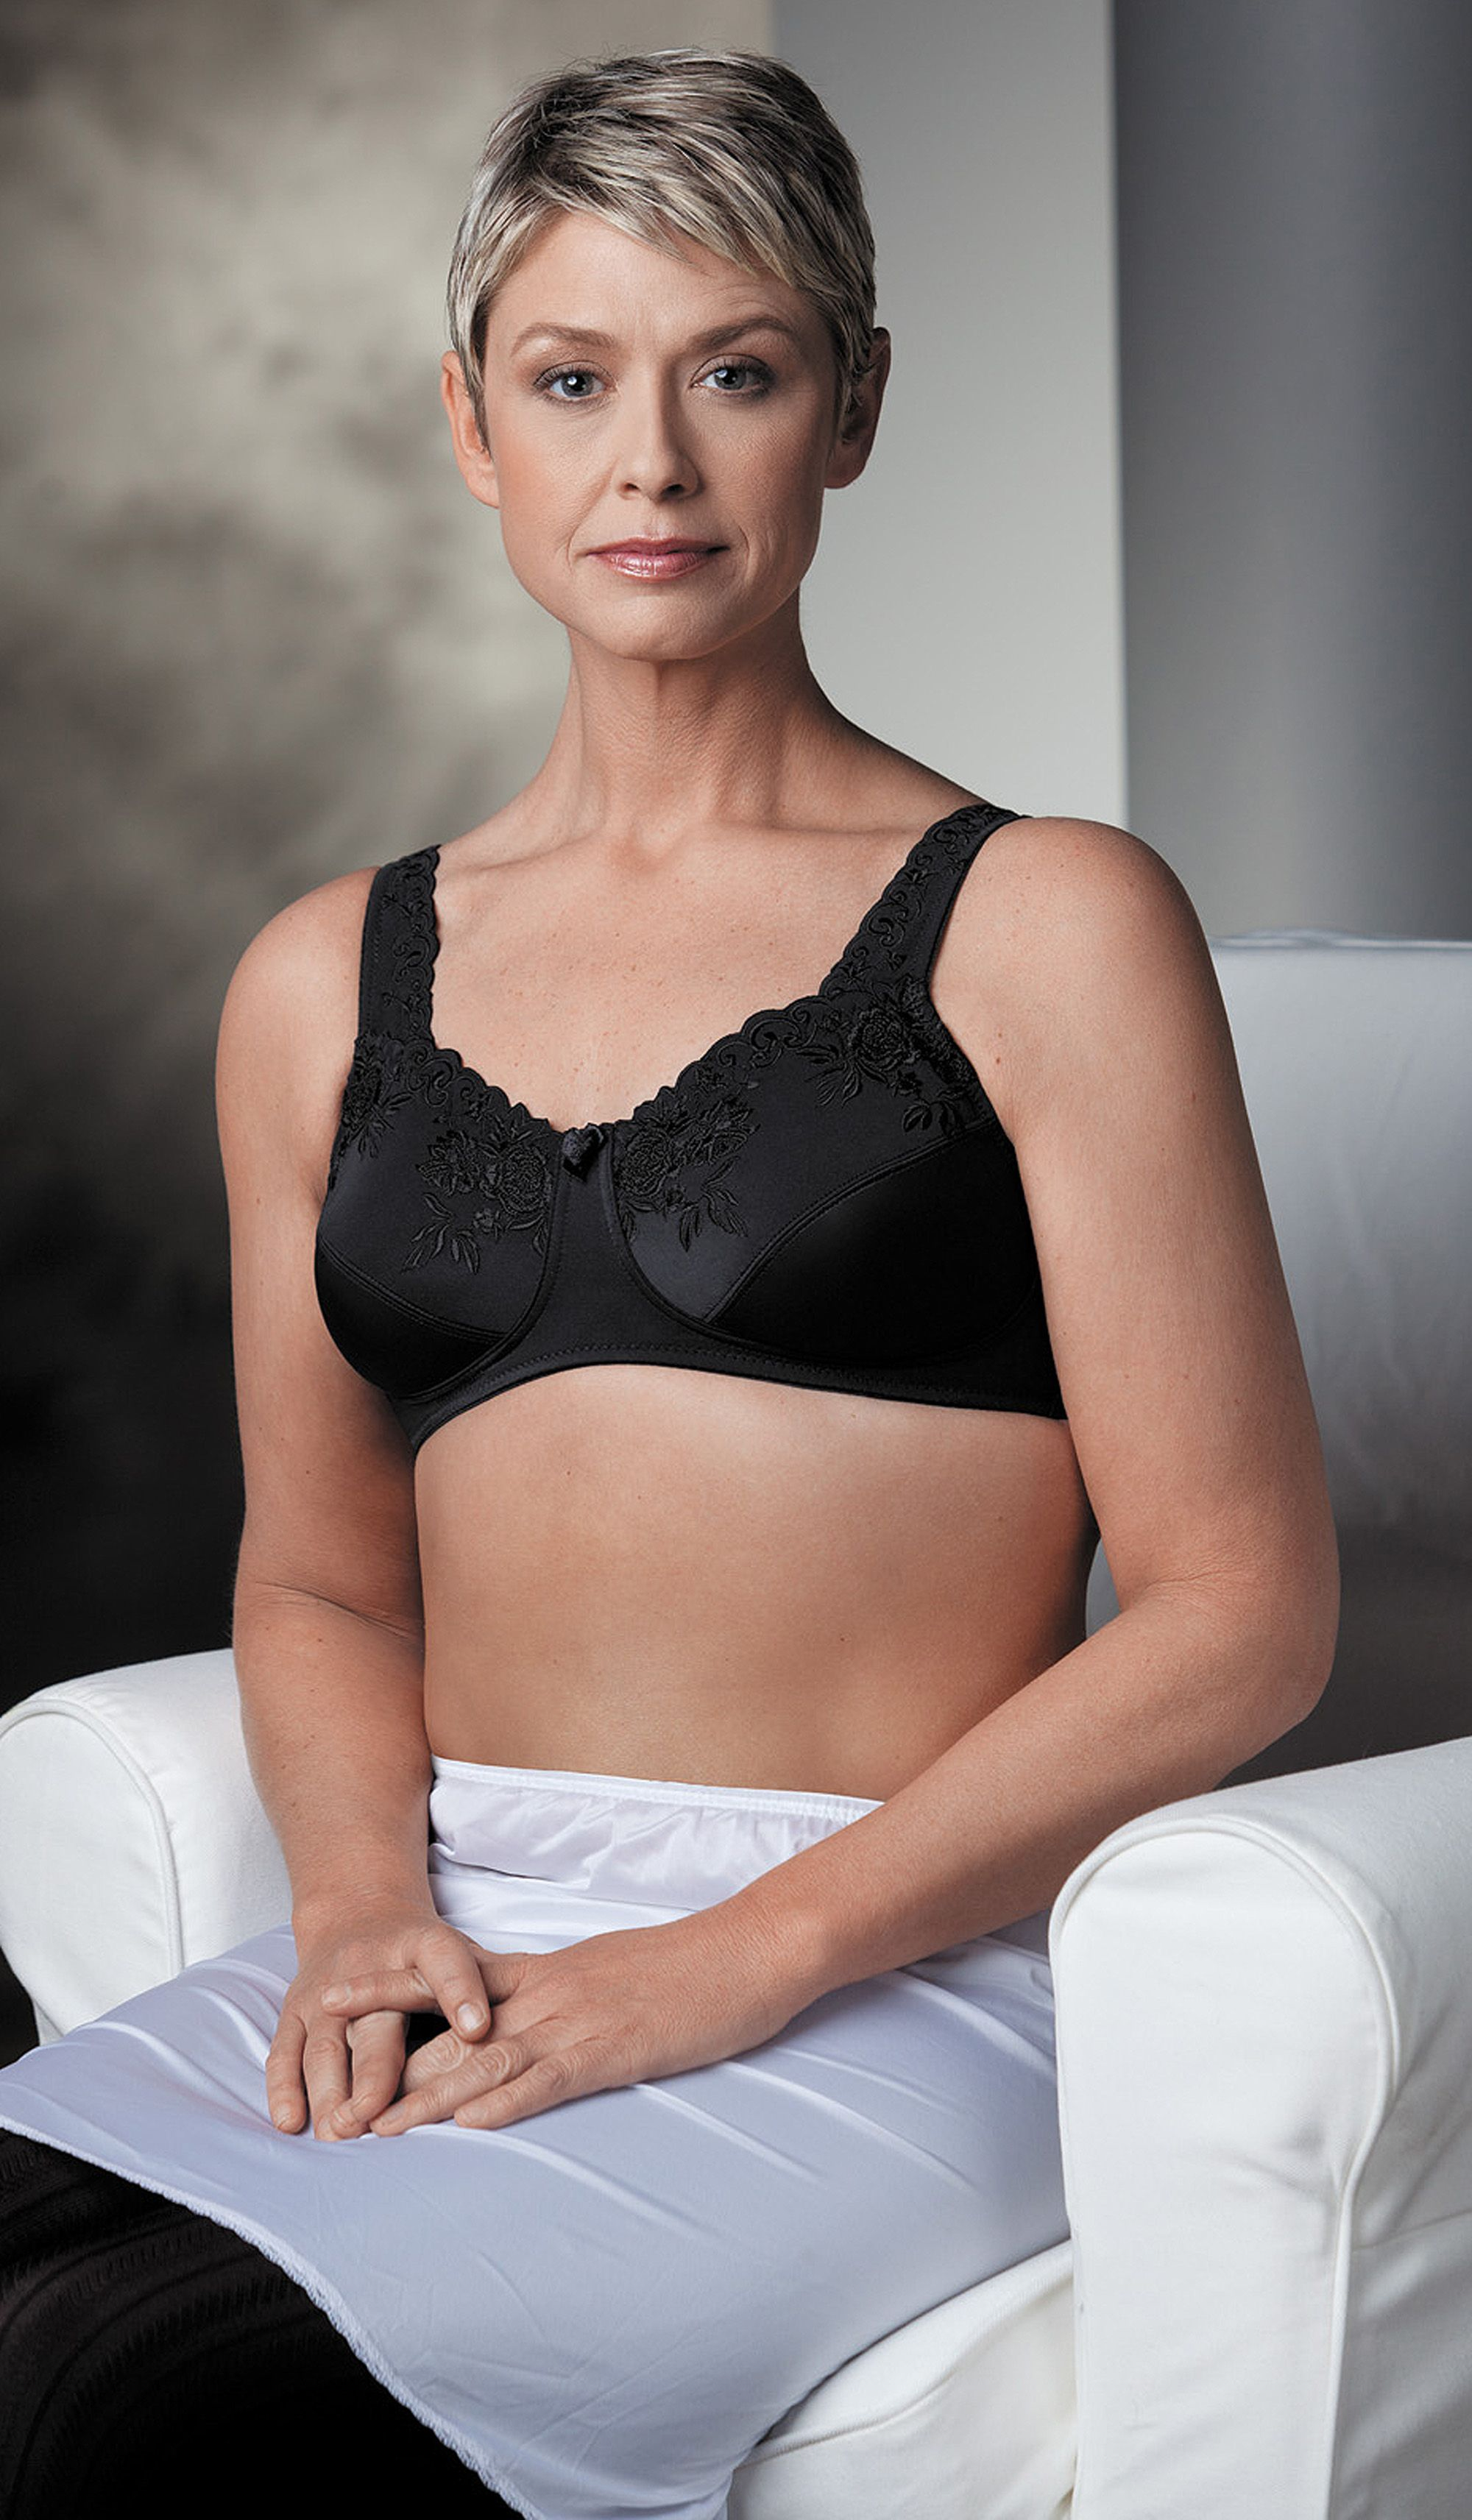 b5248990c2 Style 4022 - Trulife Mastectomy Bra - 4022 NEW LACE SOFTCUP - NOW ON SALE